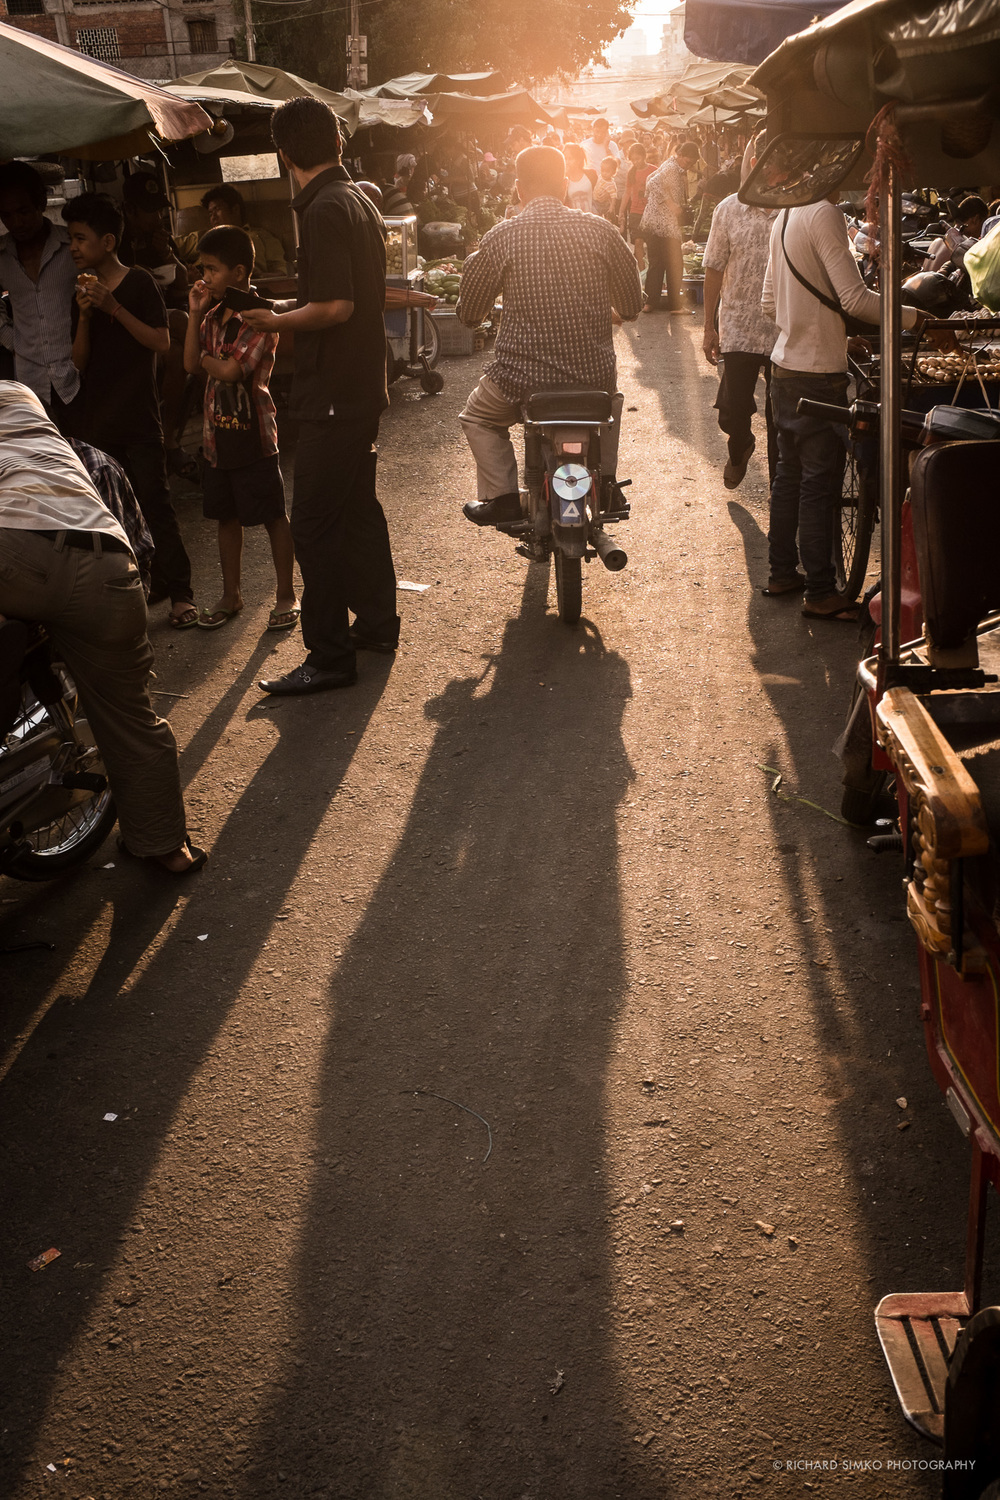 Long shadows just before sunset. Kandal market, Phnom Penh